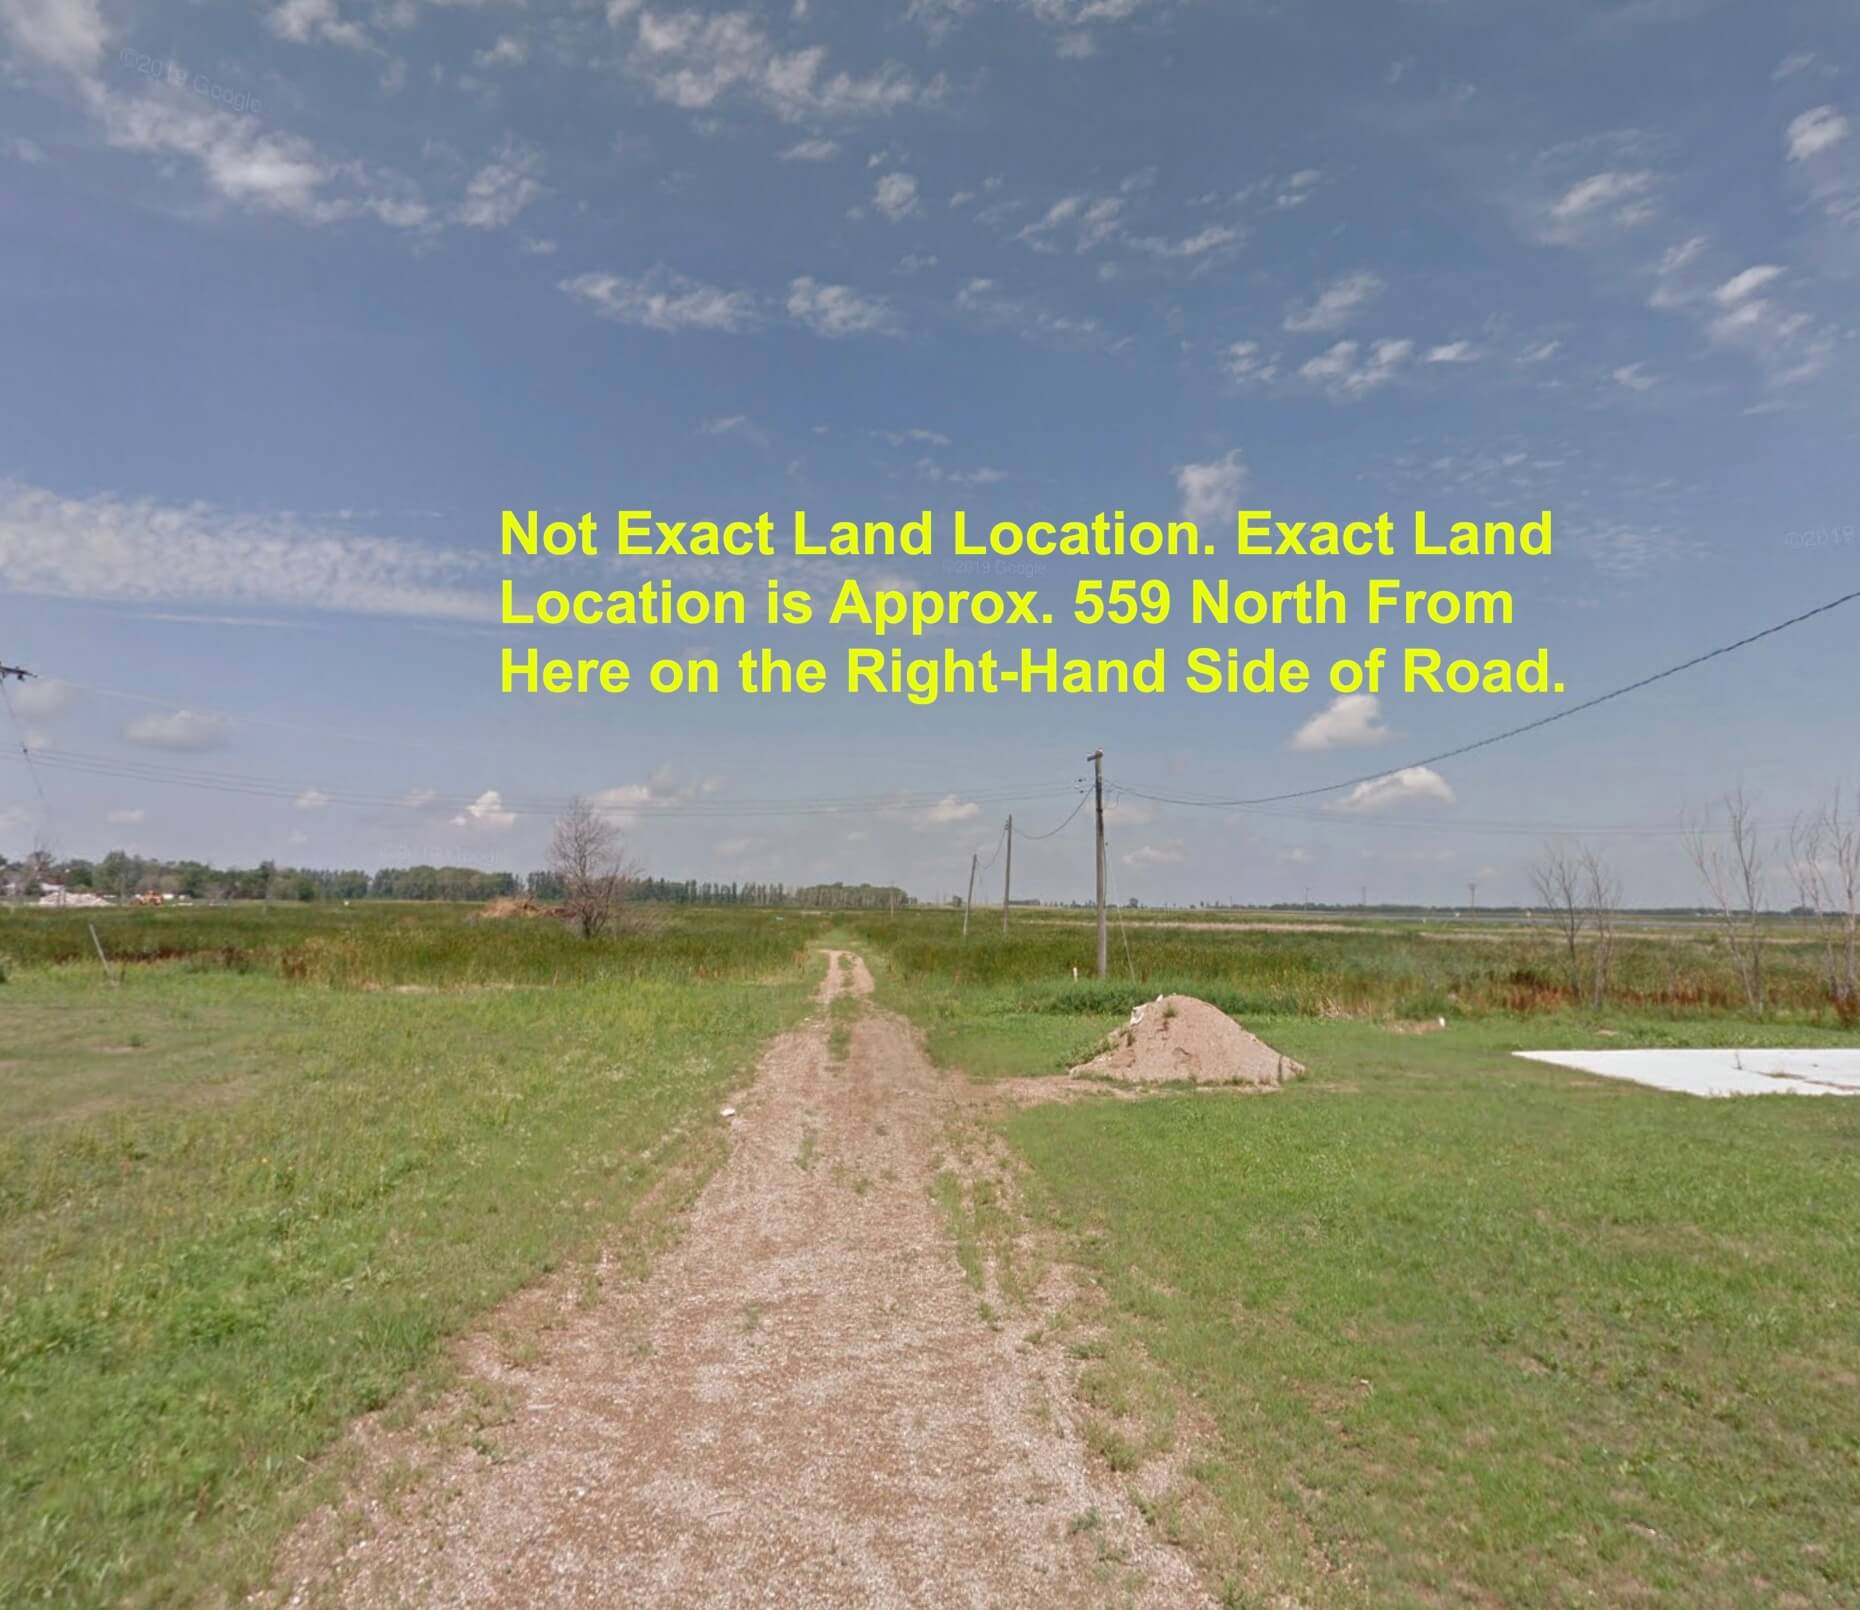 Land Near South Dakota! ND Land Right Near South Dakota. ND / SD Border